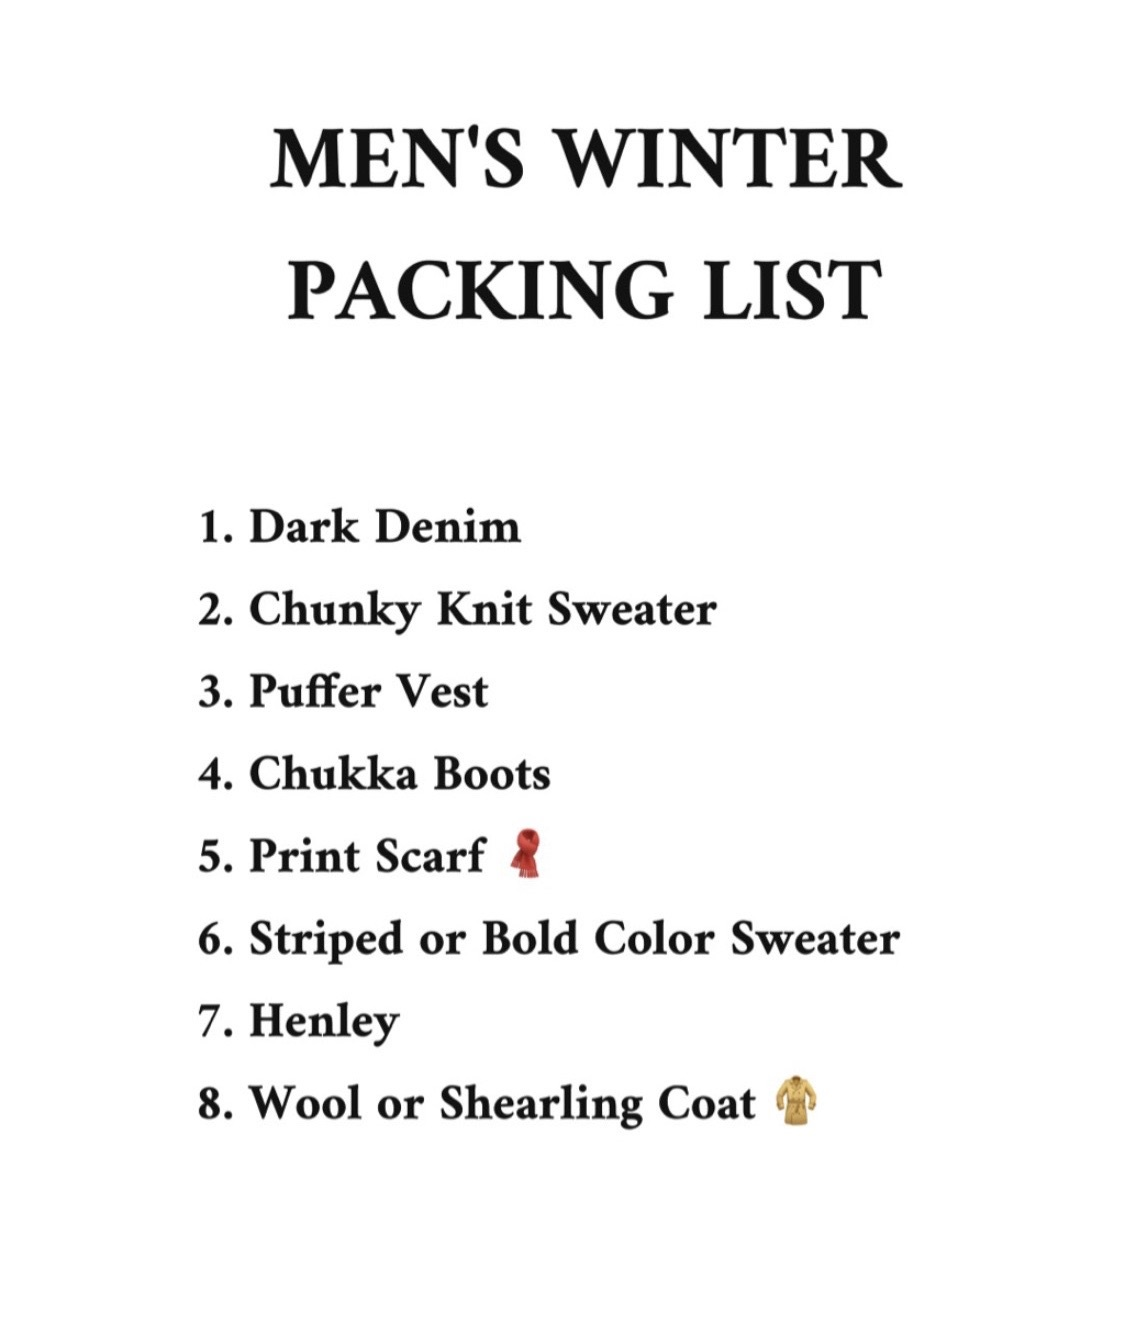 Ski Into Style…Stylish Looks for Winter Vacation Destinations, men's winter packing list